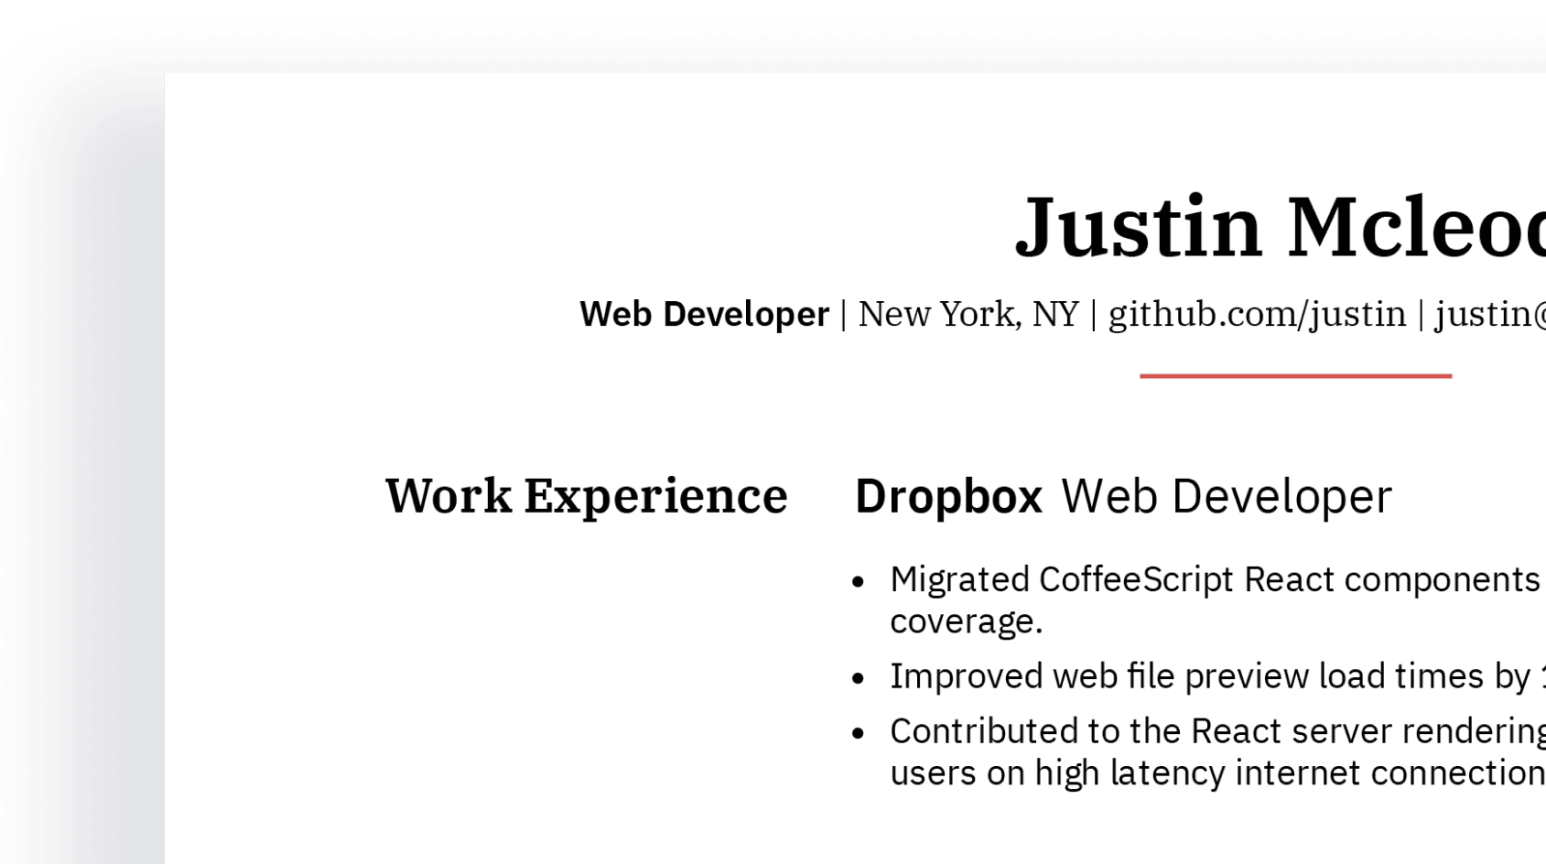 Design details of professional web developer resume sample.